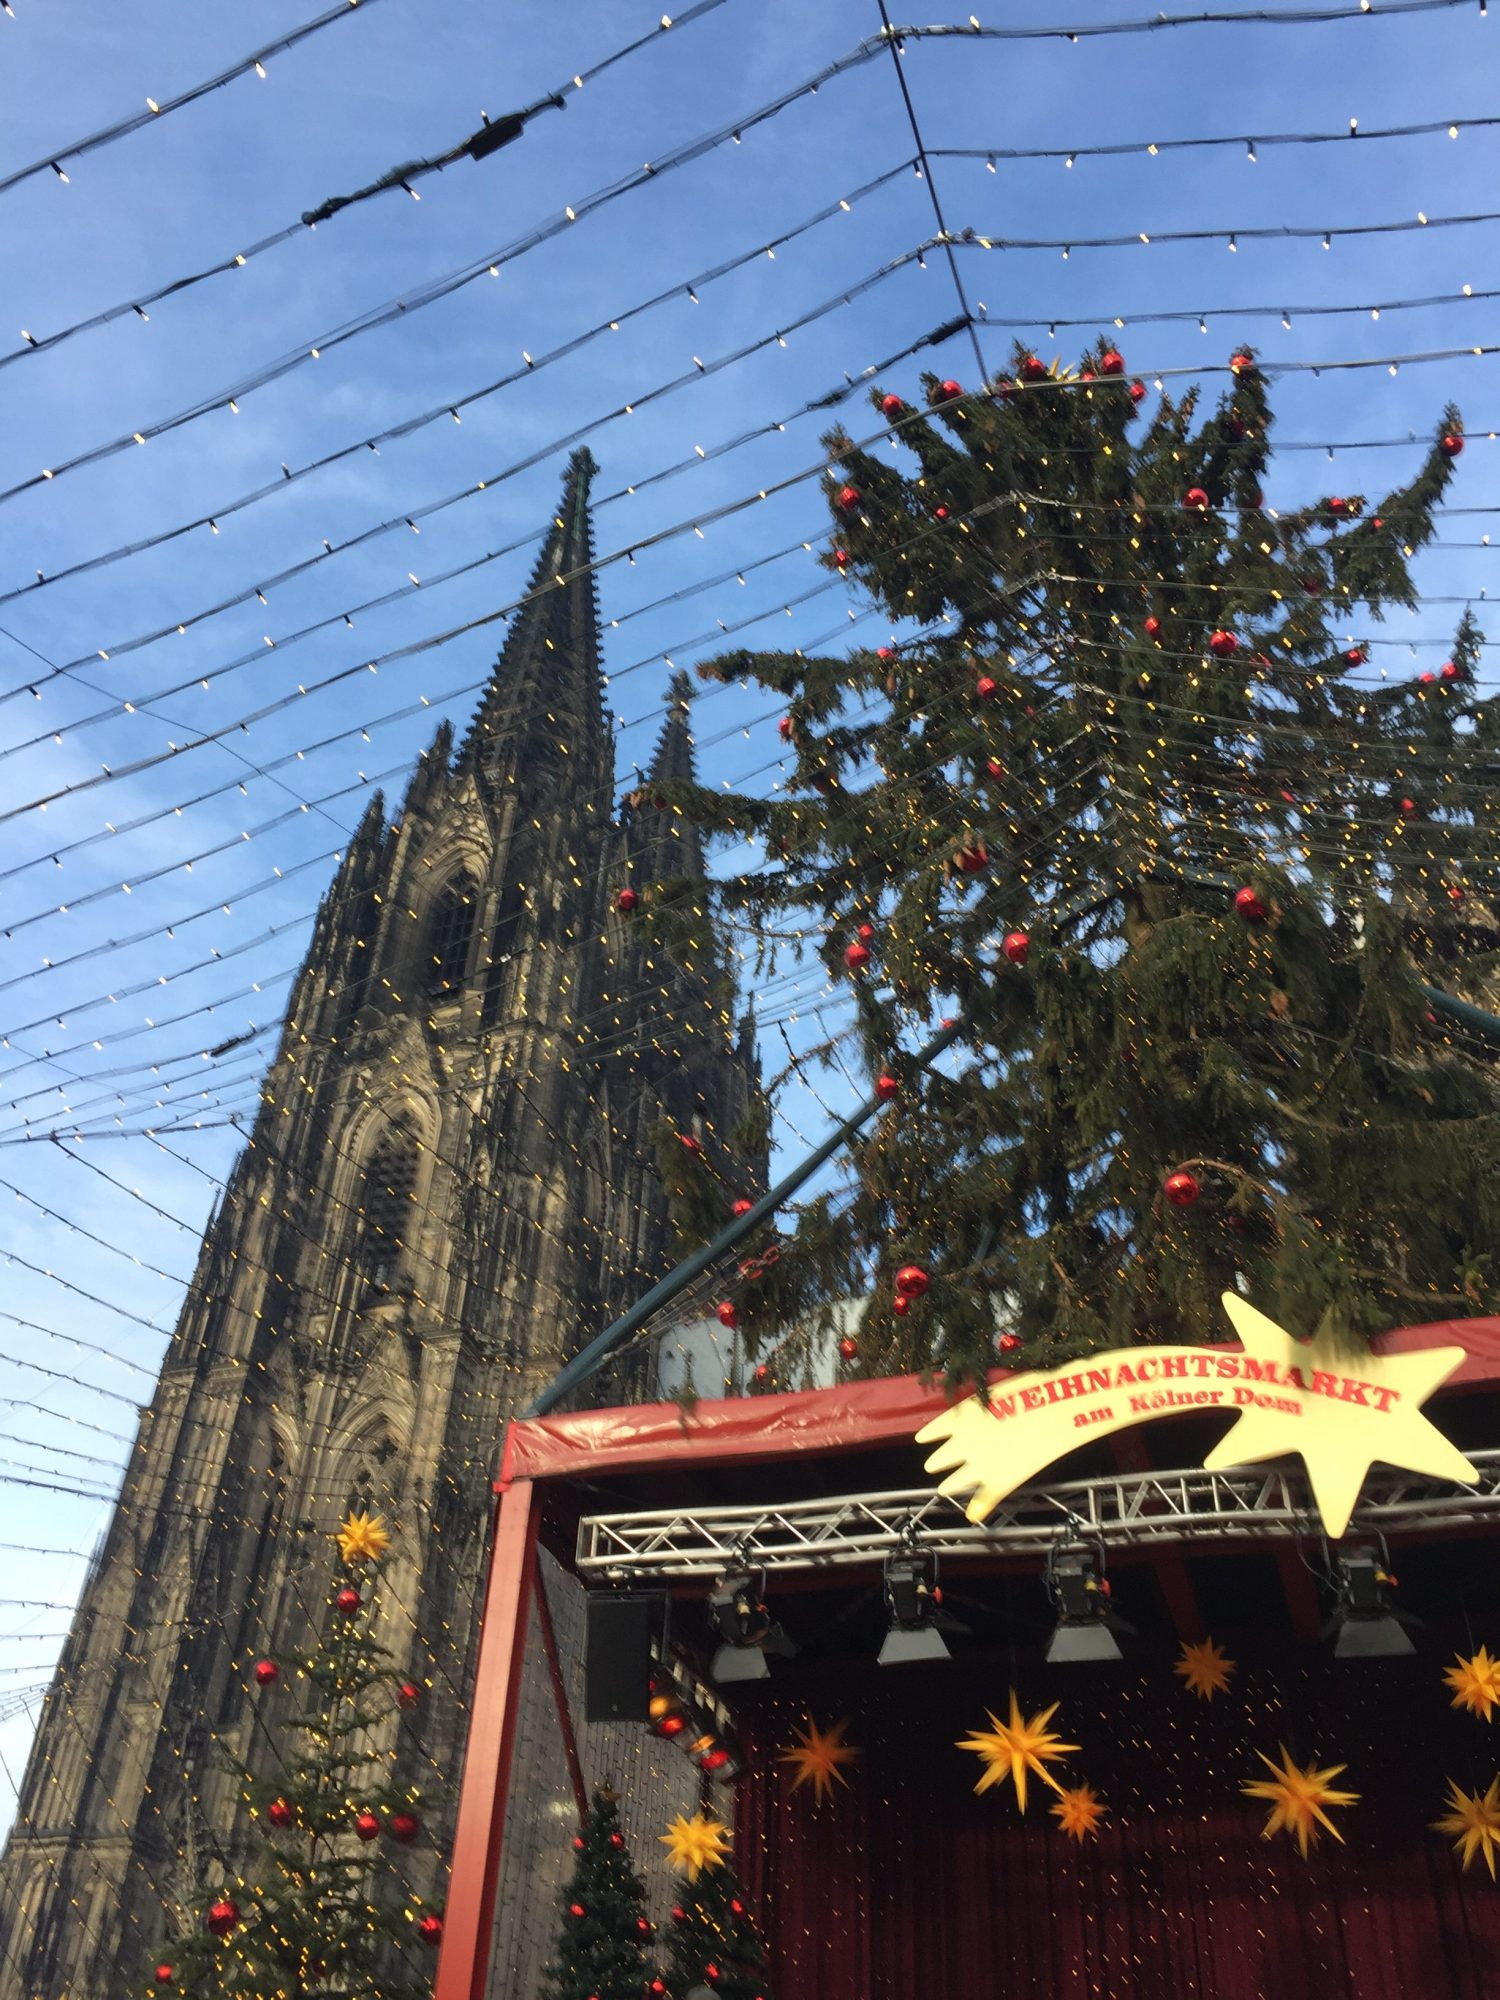 My favourite Christmas market in Cologne, I think the Germans do Christmas food the best.